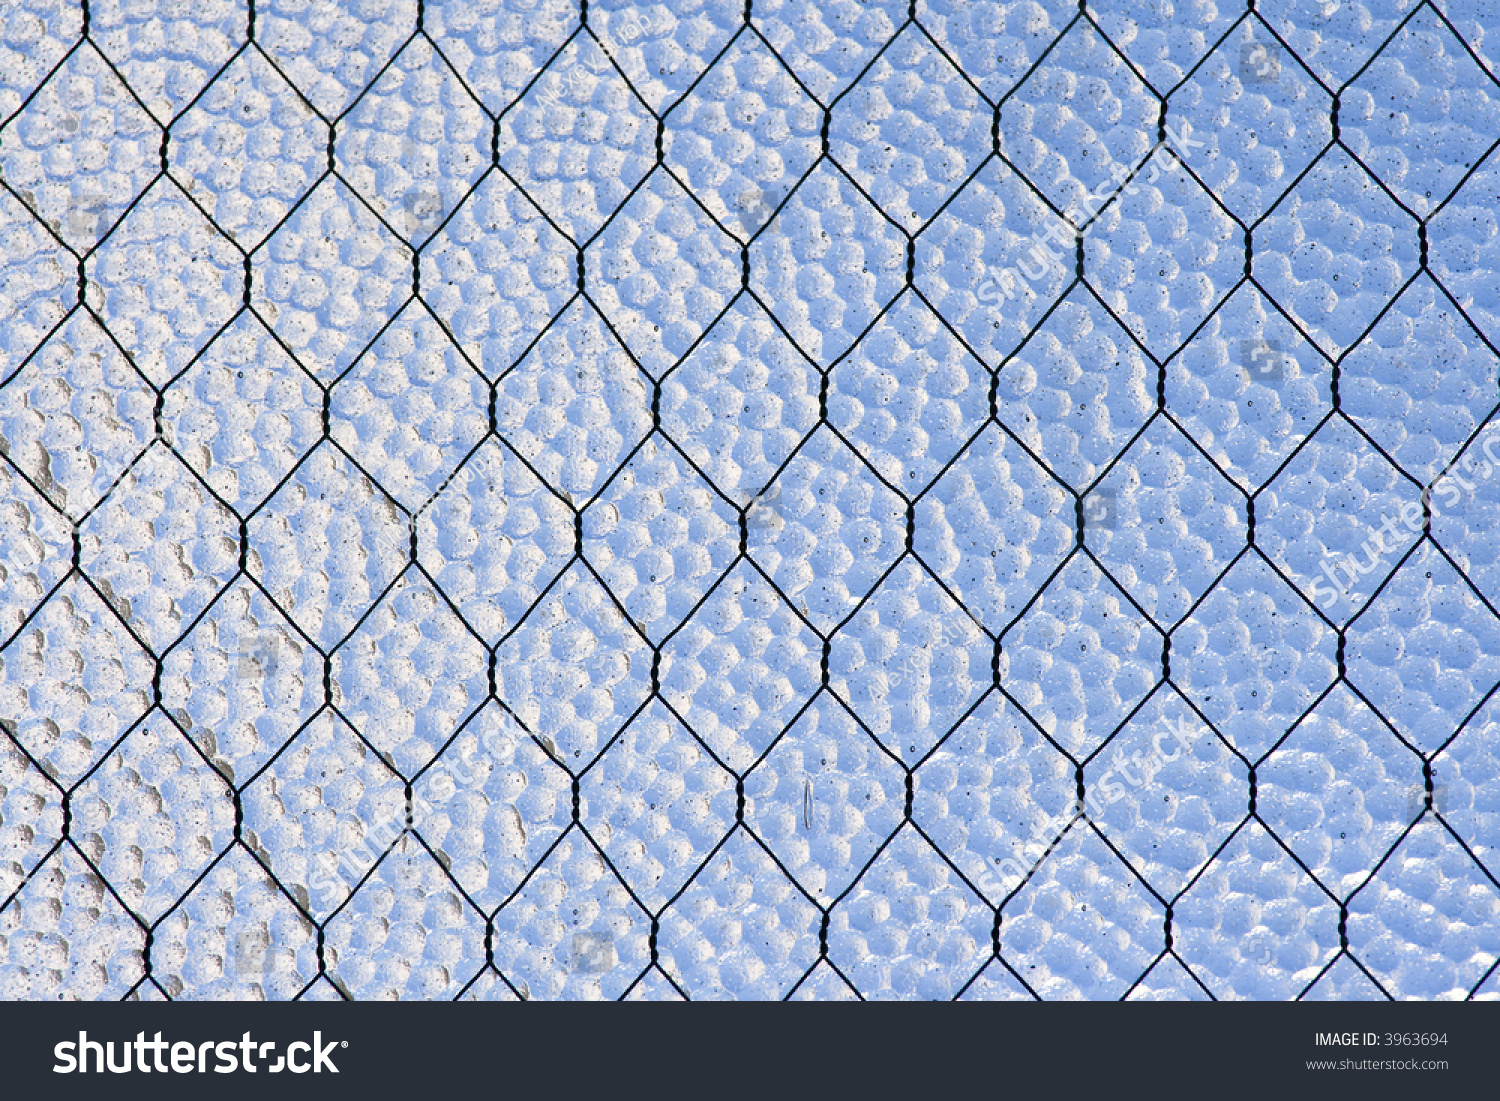 Closeup Image Wirereinforced Glass Window Abstract Stock Photo (100 ...